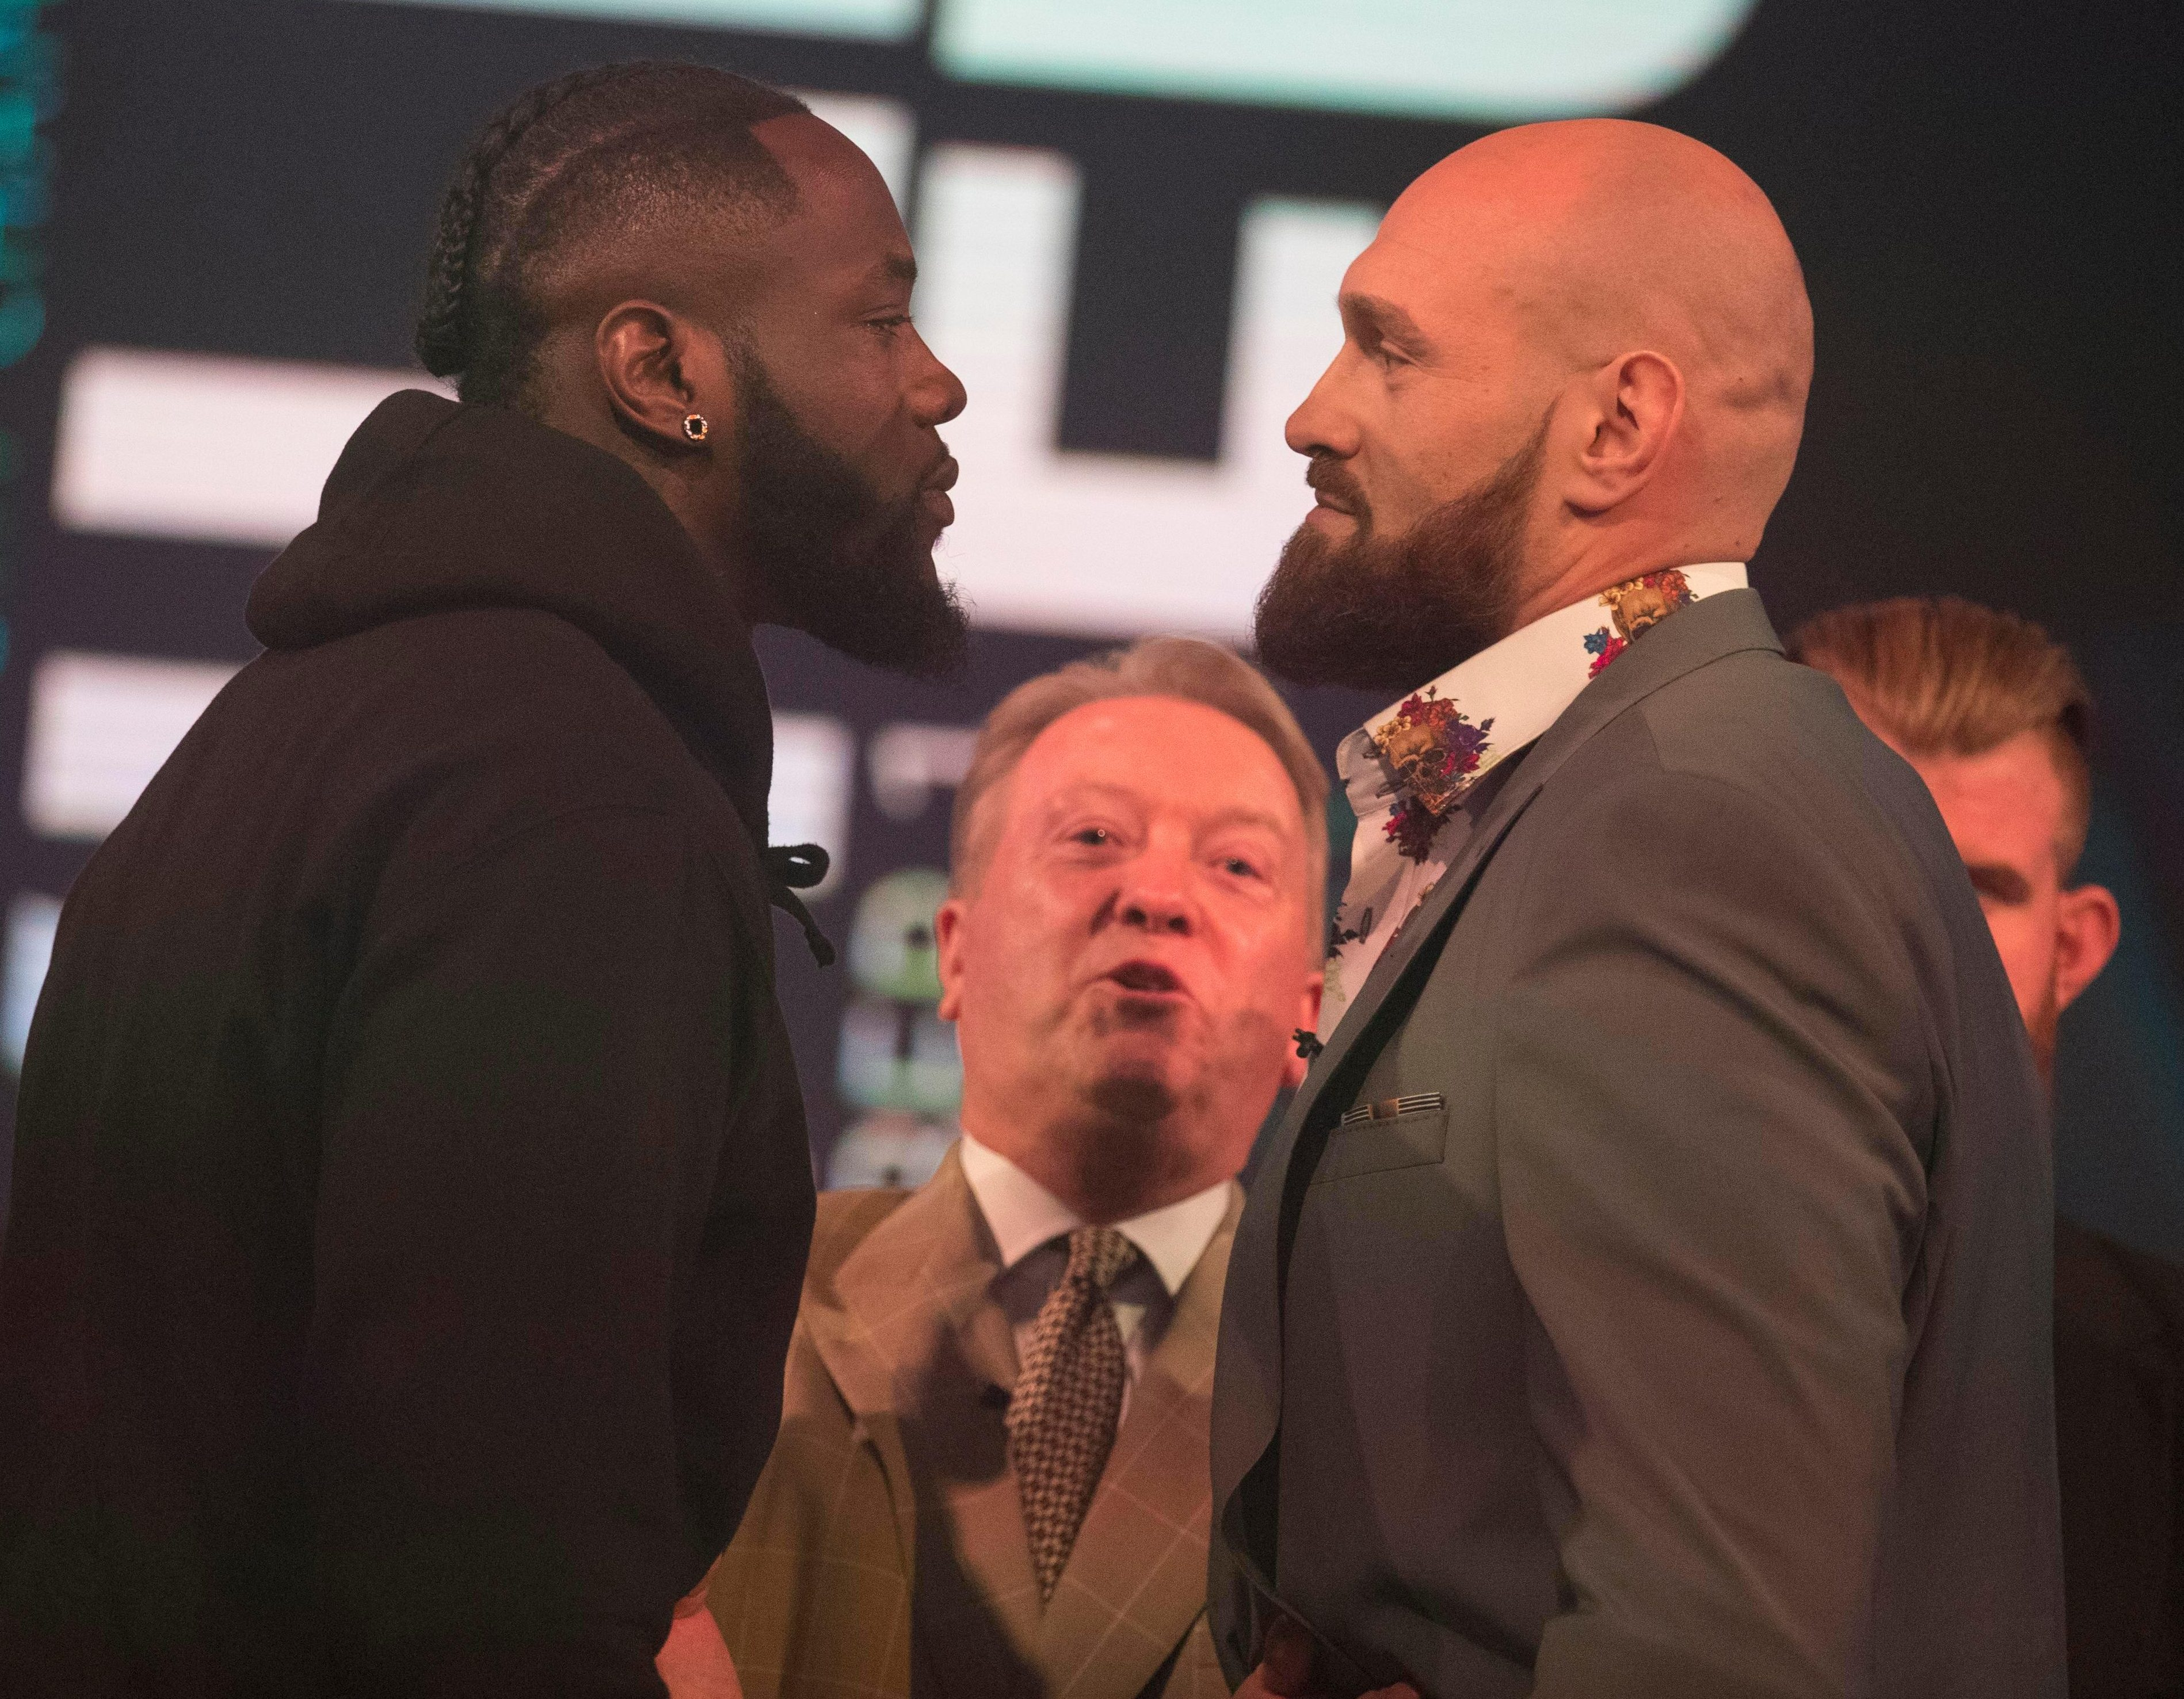 Wilder and Fury are set for a heavyweight showdown on December 1